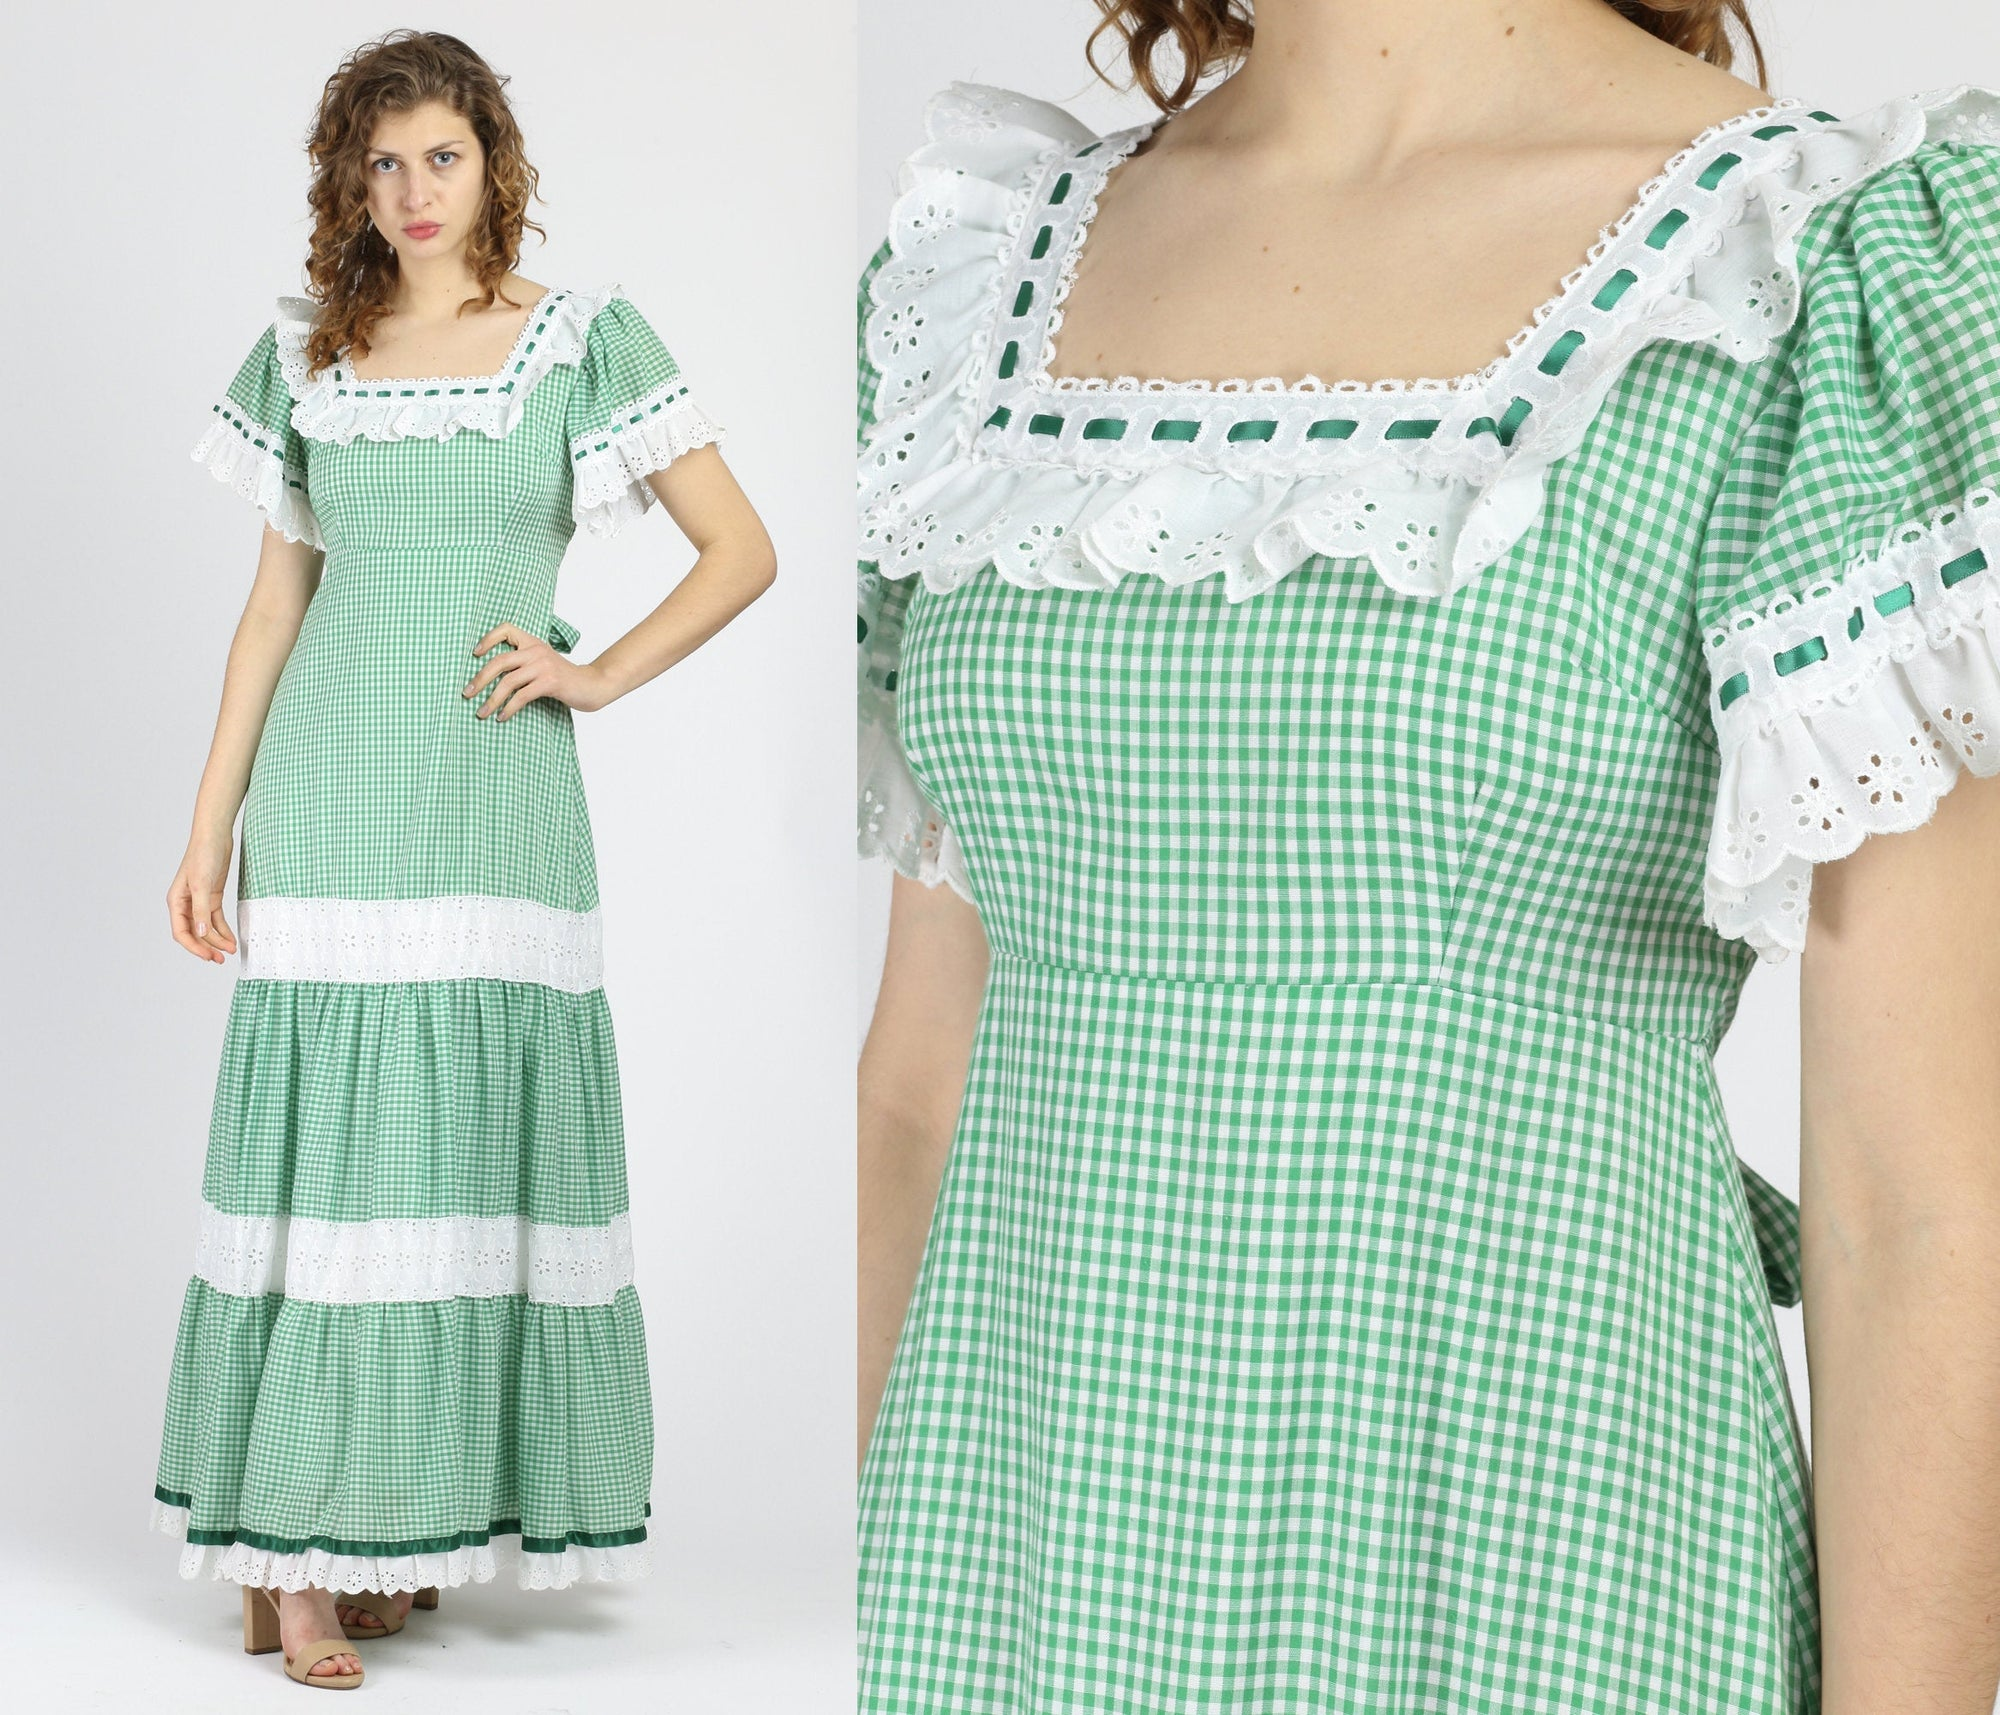 70s Boho Green Gingham Maxi Dress - Medium